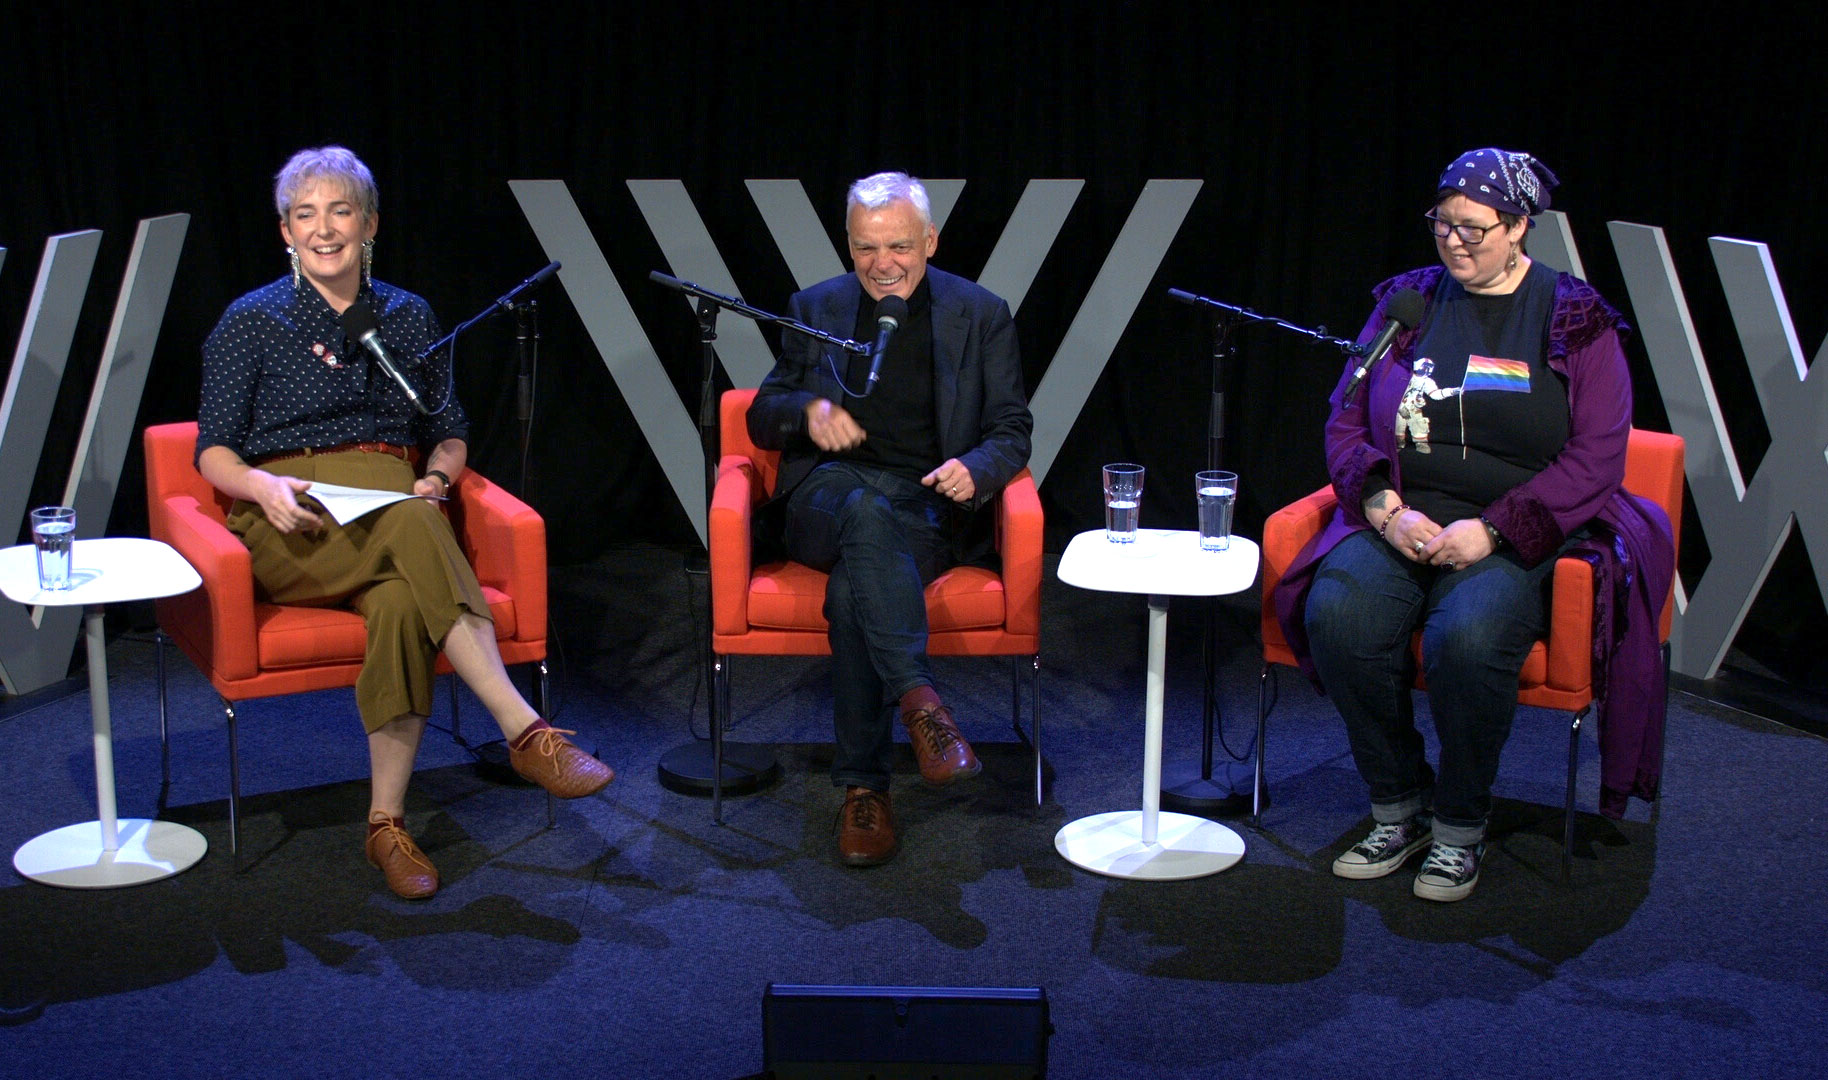 Photo of Clem Bastow, Graeme Simsion and Yenn Purkis